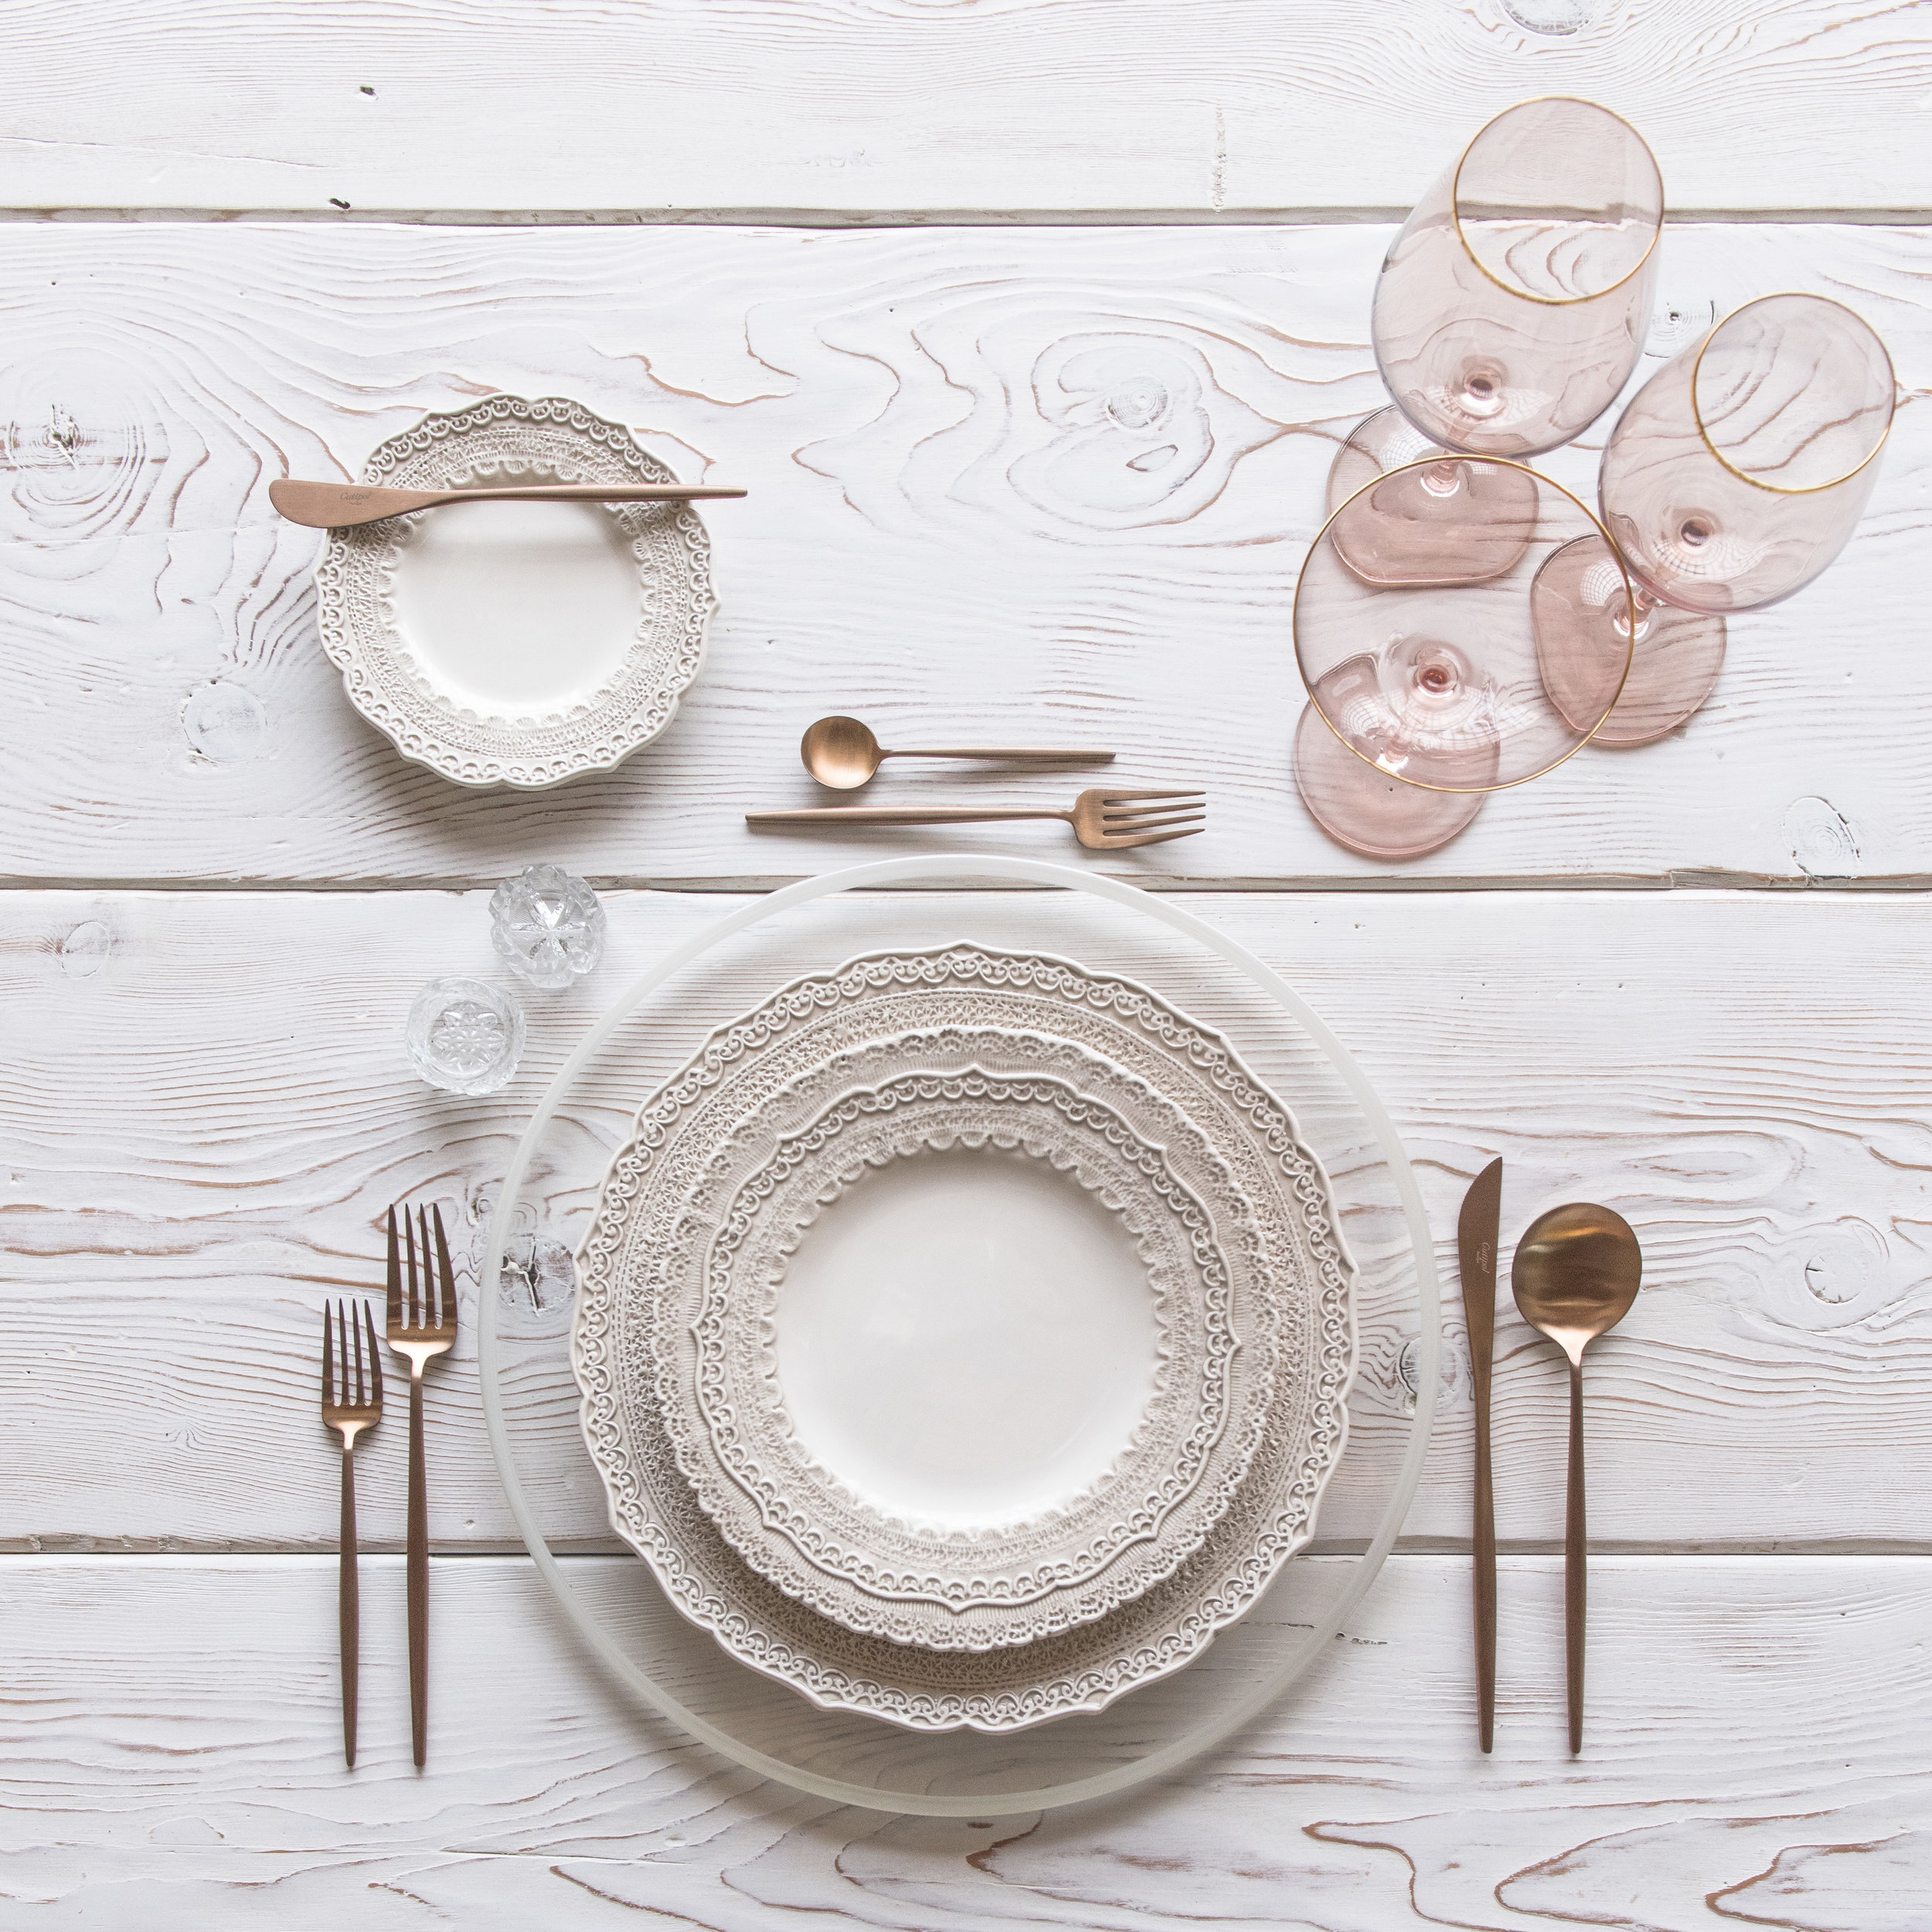 RENT: Halo Glass Chargers in Pearl + Lace Dinnerware in White + Moon Flatware in Brushed Rose Gold + Bella 24k Gold Rimmed Stemware in Blush + Antique Crystal Salt Cellars  SHOP:Halo Glass Chargers in Pearl +Moon Flatware in Brushed Rose Gold + Bella 24k Gold Rimmed Stemware in Blush